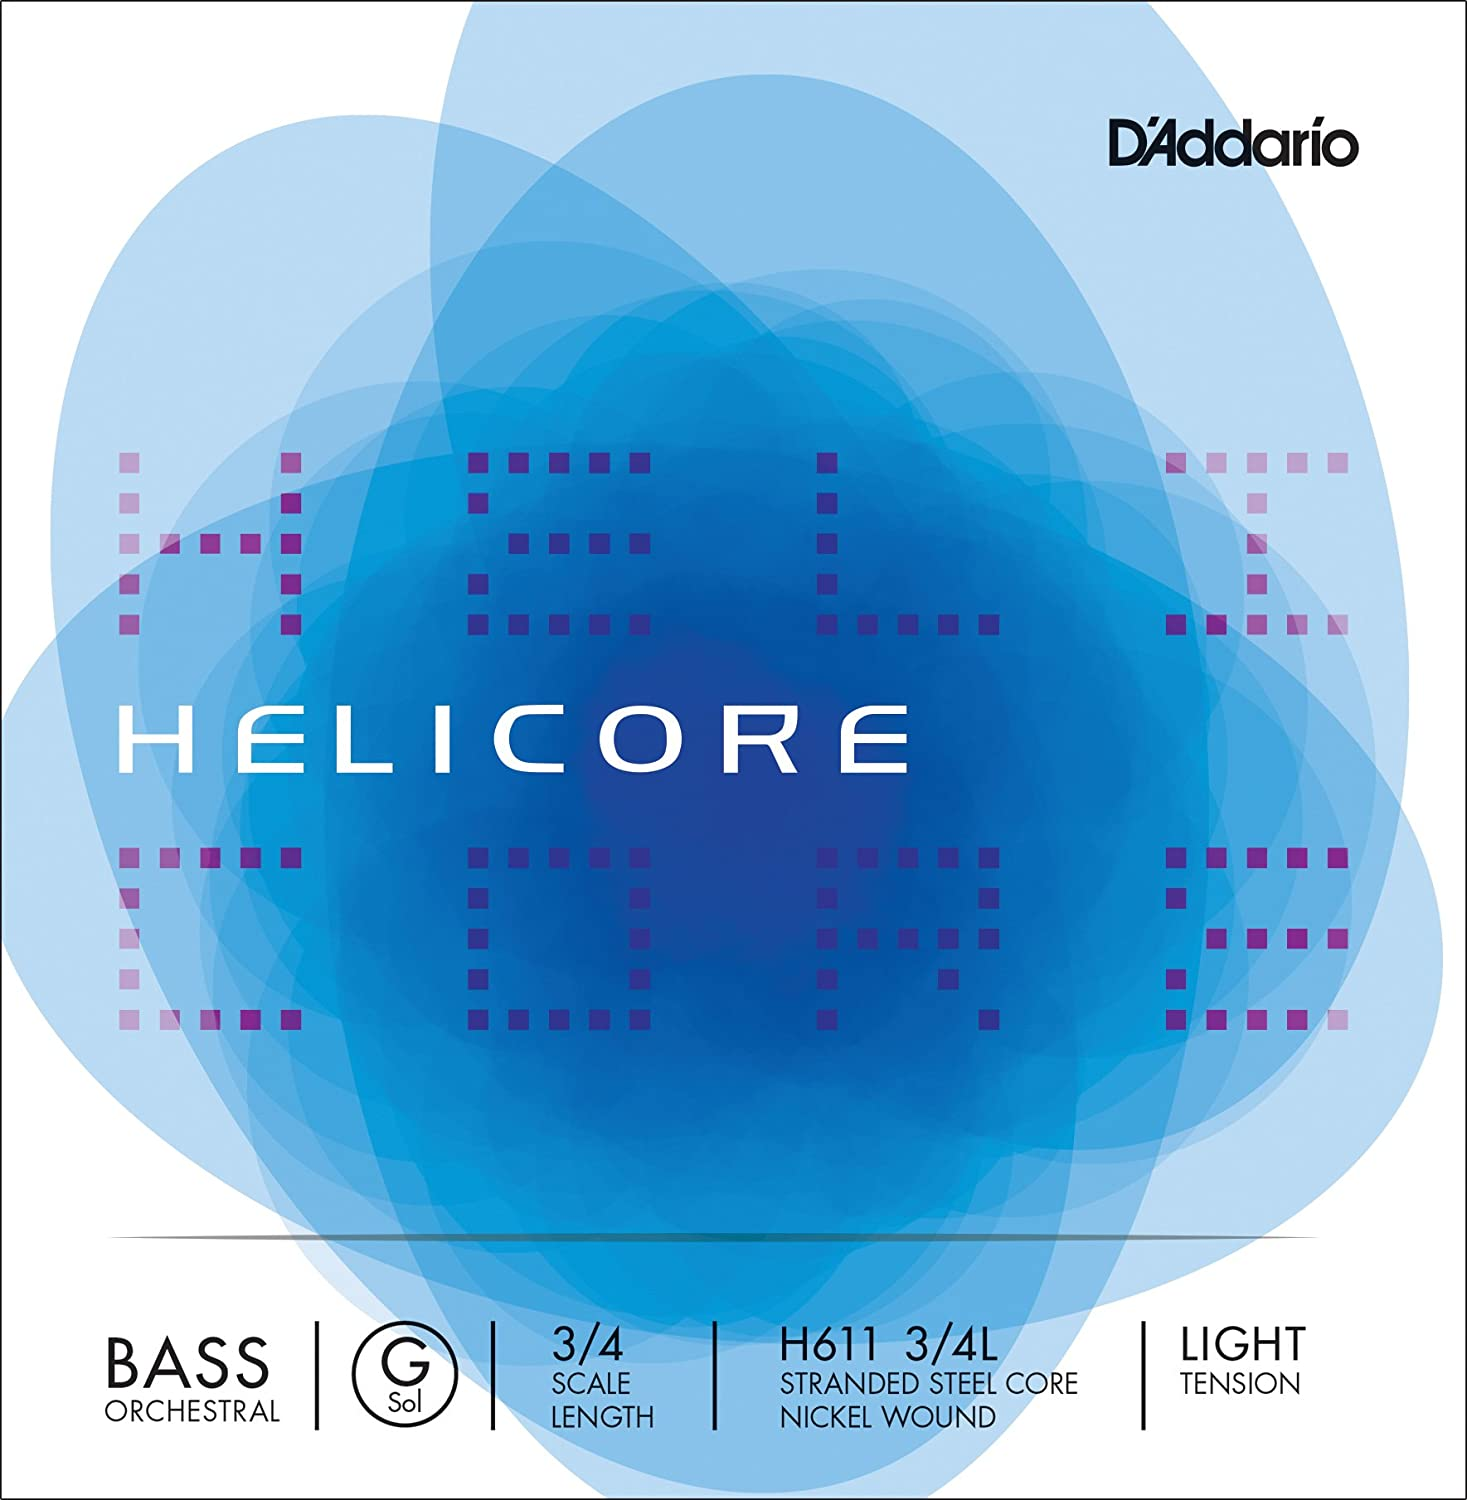 D'Addario Helicore Orchestral Bass Single G String, 3/4 Scale, Heavy Tension - H611 3/4H D' Addario